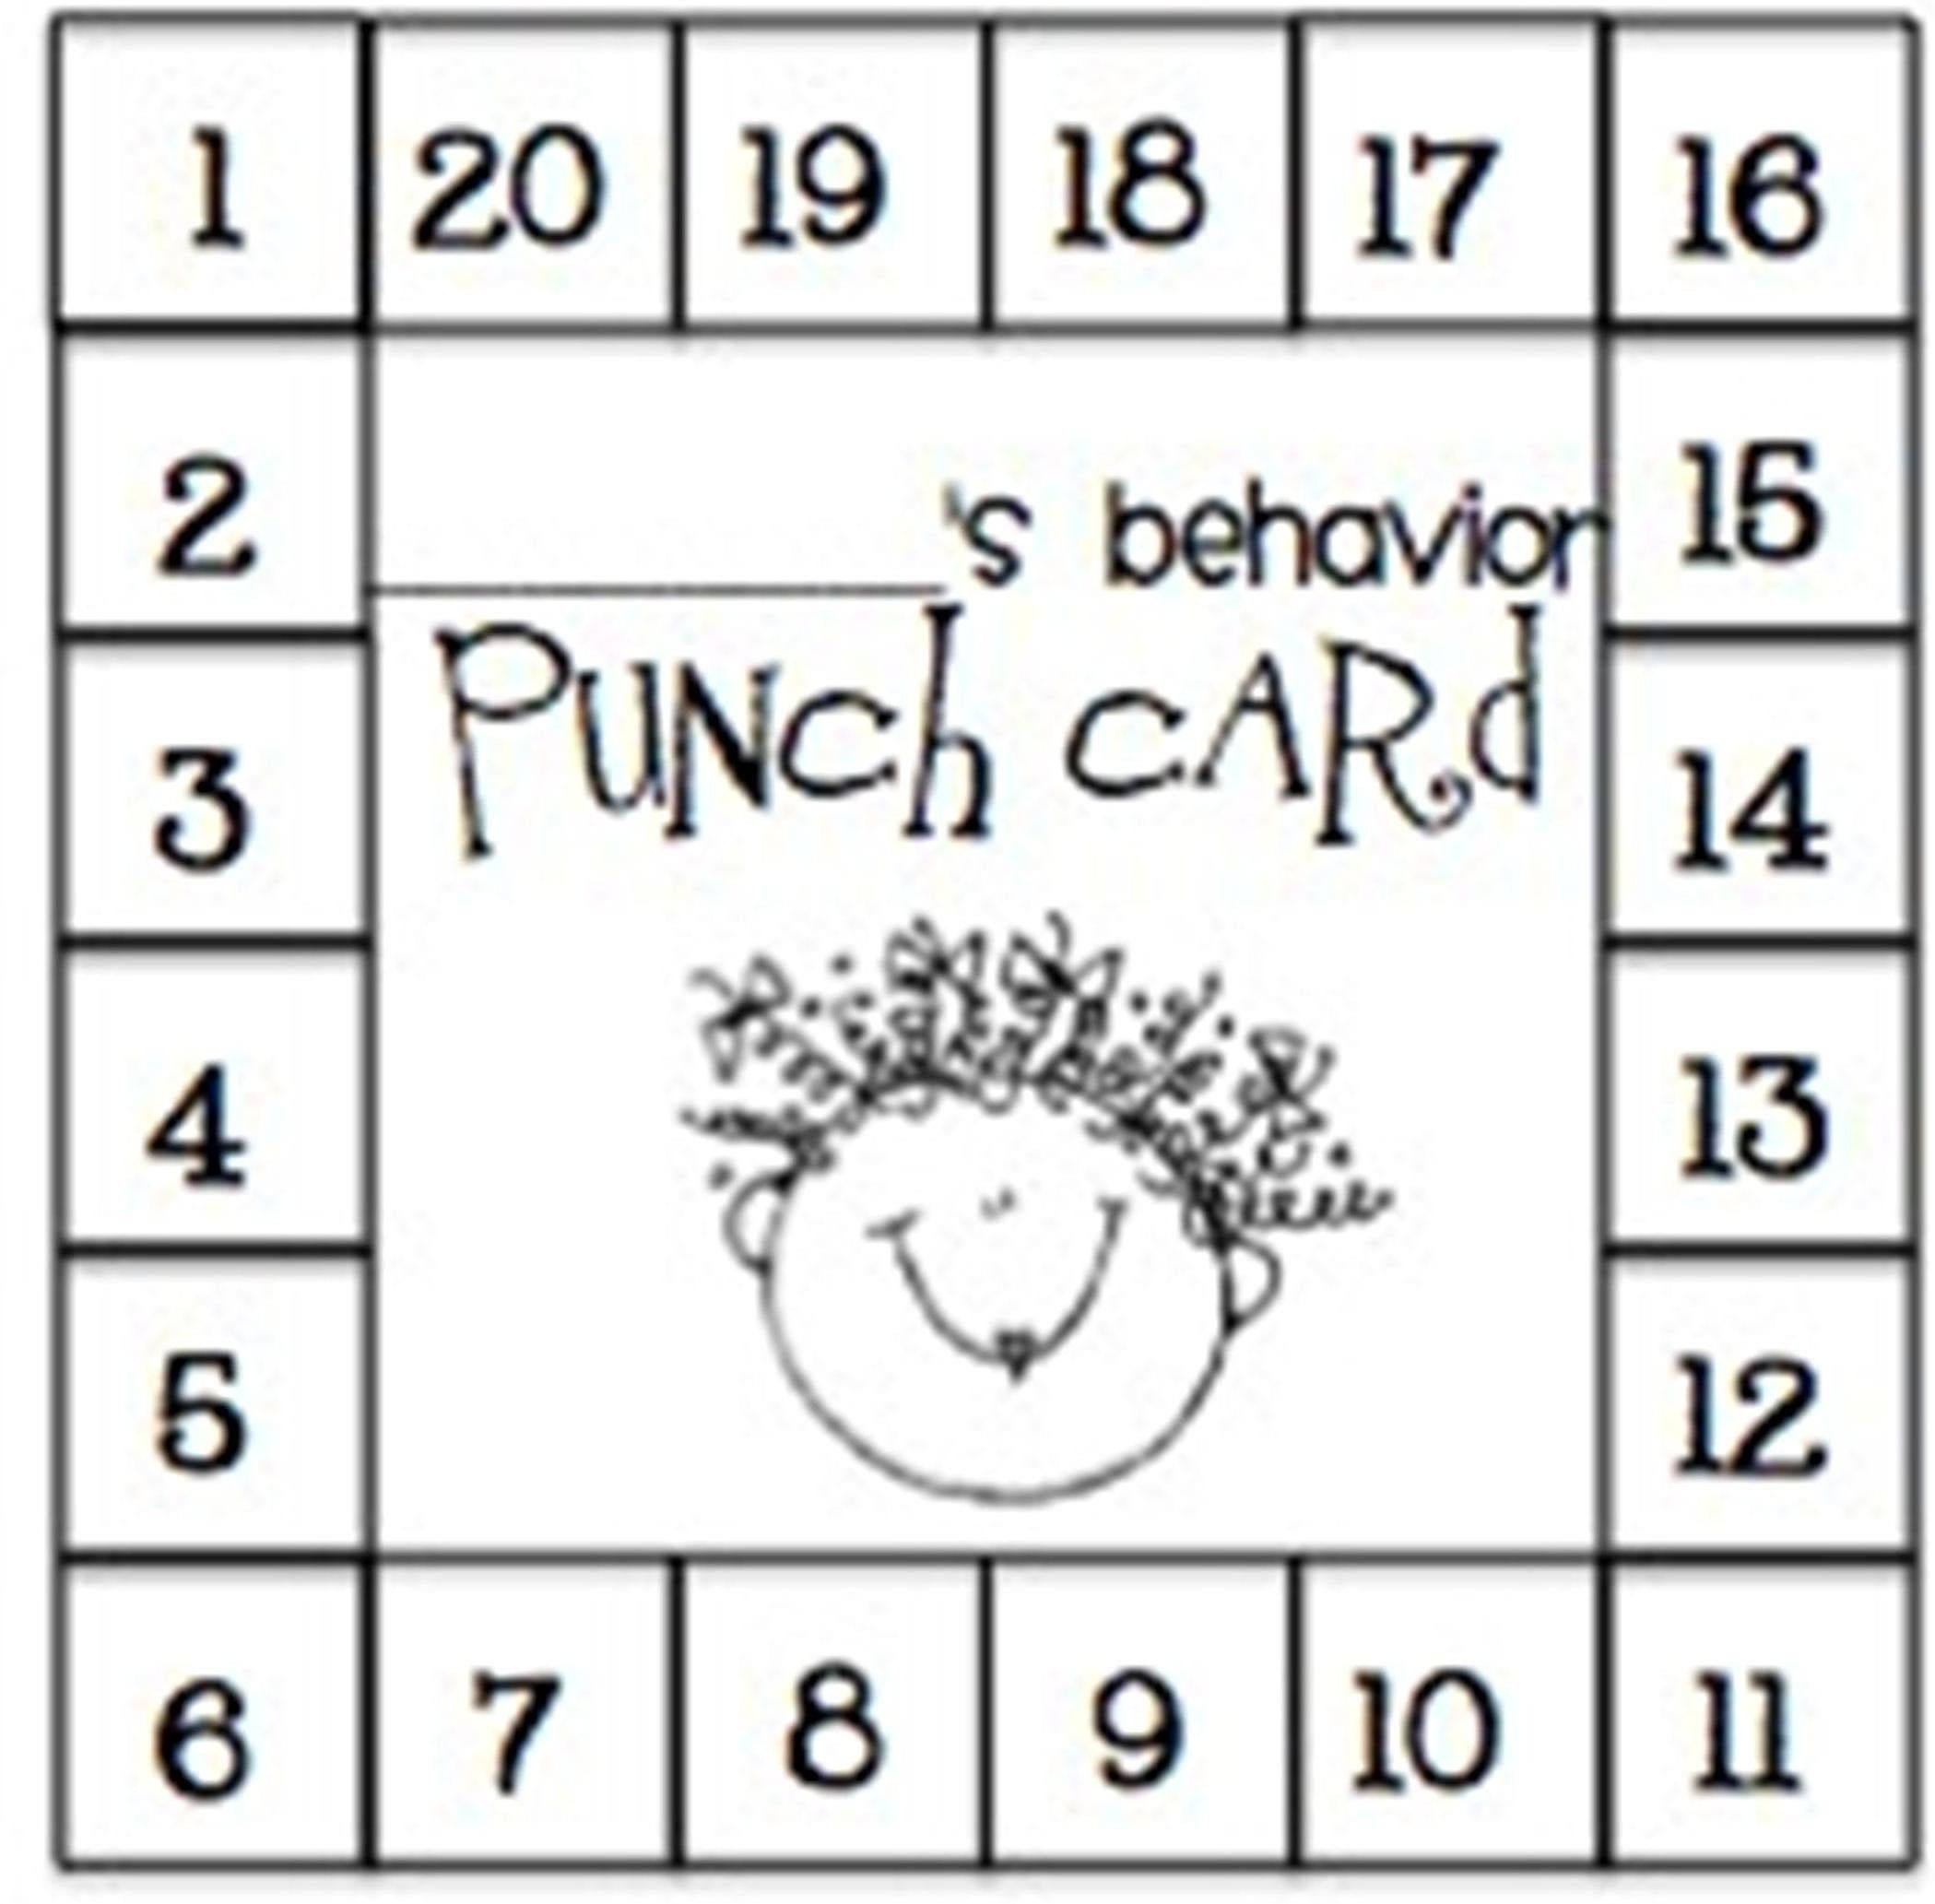 Punch Card Download Behavior Punch Card Pdf Downloadable Etsy In 2021 Teaching Classroom Management Classroom Management Behavior Punch Cards